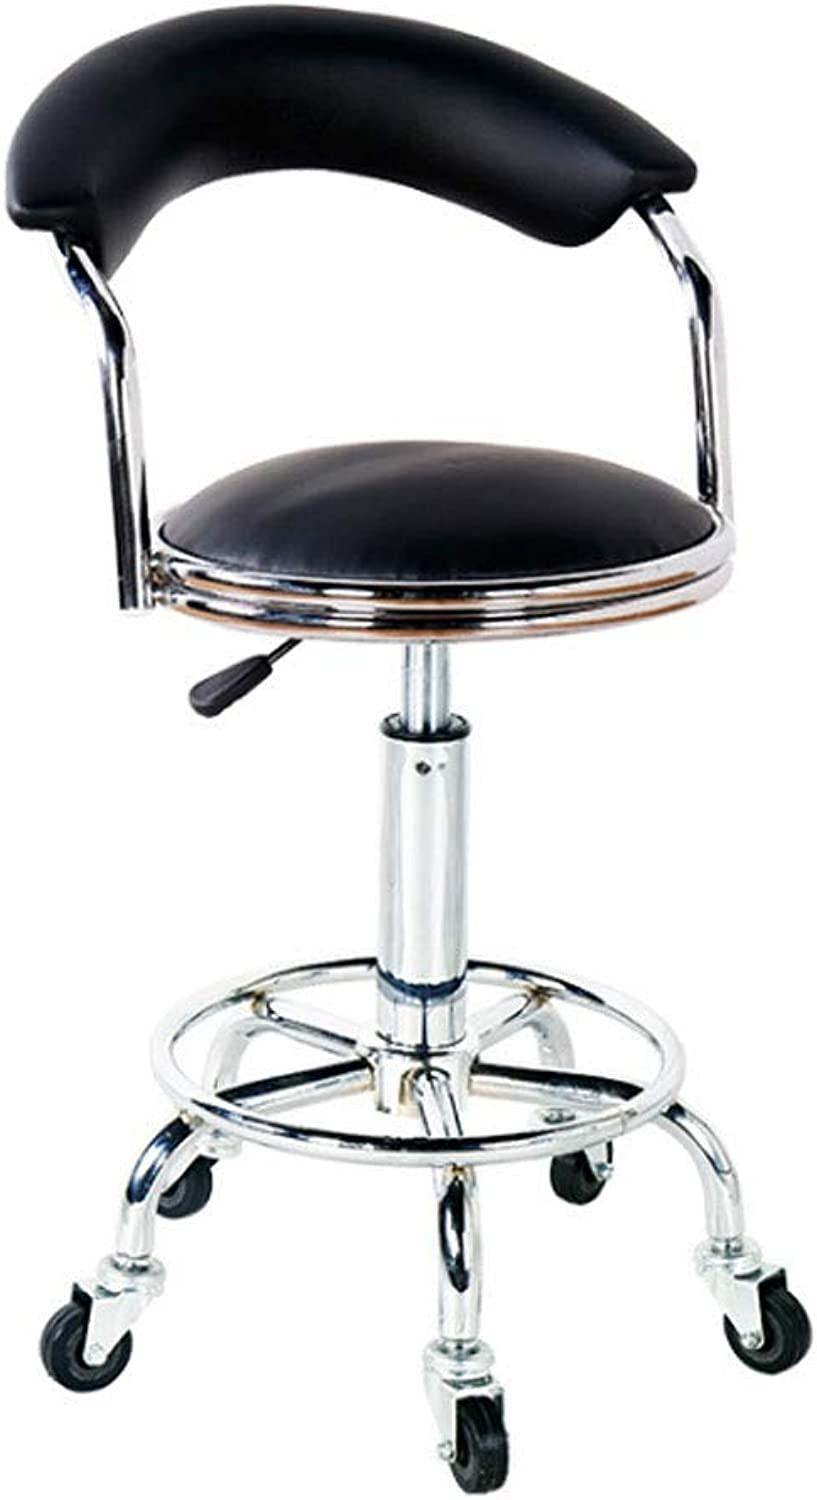 Bar stools Rolling Swivel Salon Massage Stool, with Backrest, for Tattoo Facial Spa Clinic Kitchen Bar Height Chair (color   Black)